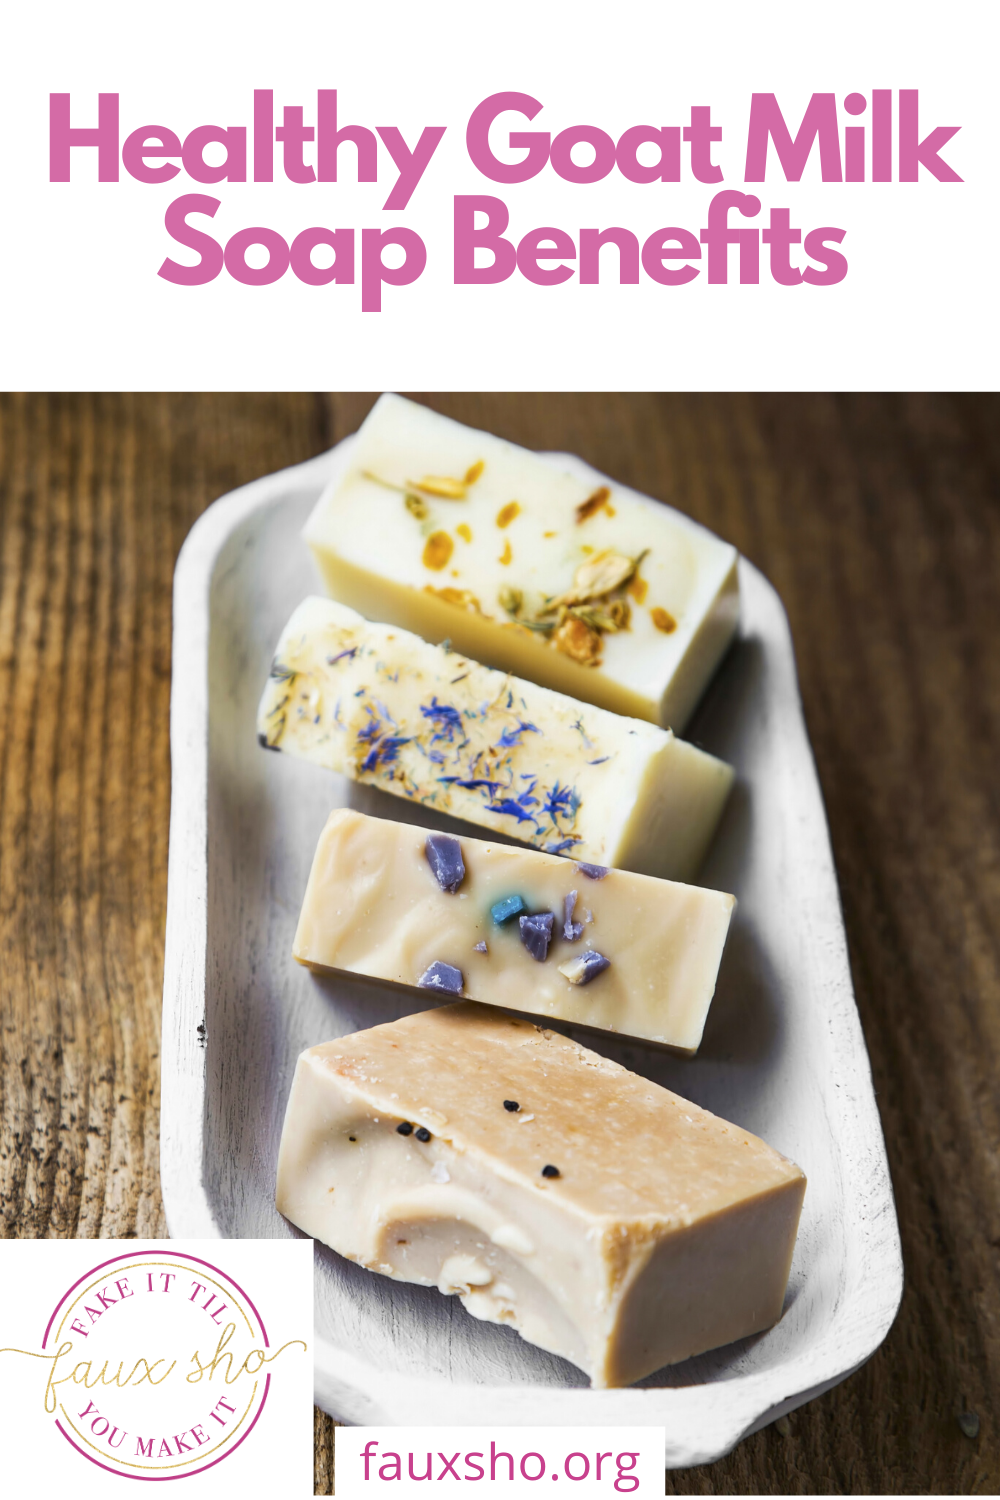 Have you heard of the health benefits you get from using goat milk soap? Goat milk soap is full of vitamins and minerals that work wonders on your skin. Learn more here! #goatmilksoap #healthygoatmilksoap #goatmilksoapwithbenefits #fauxshoblog